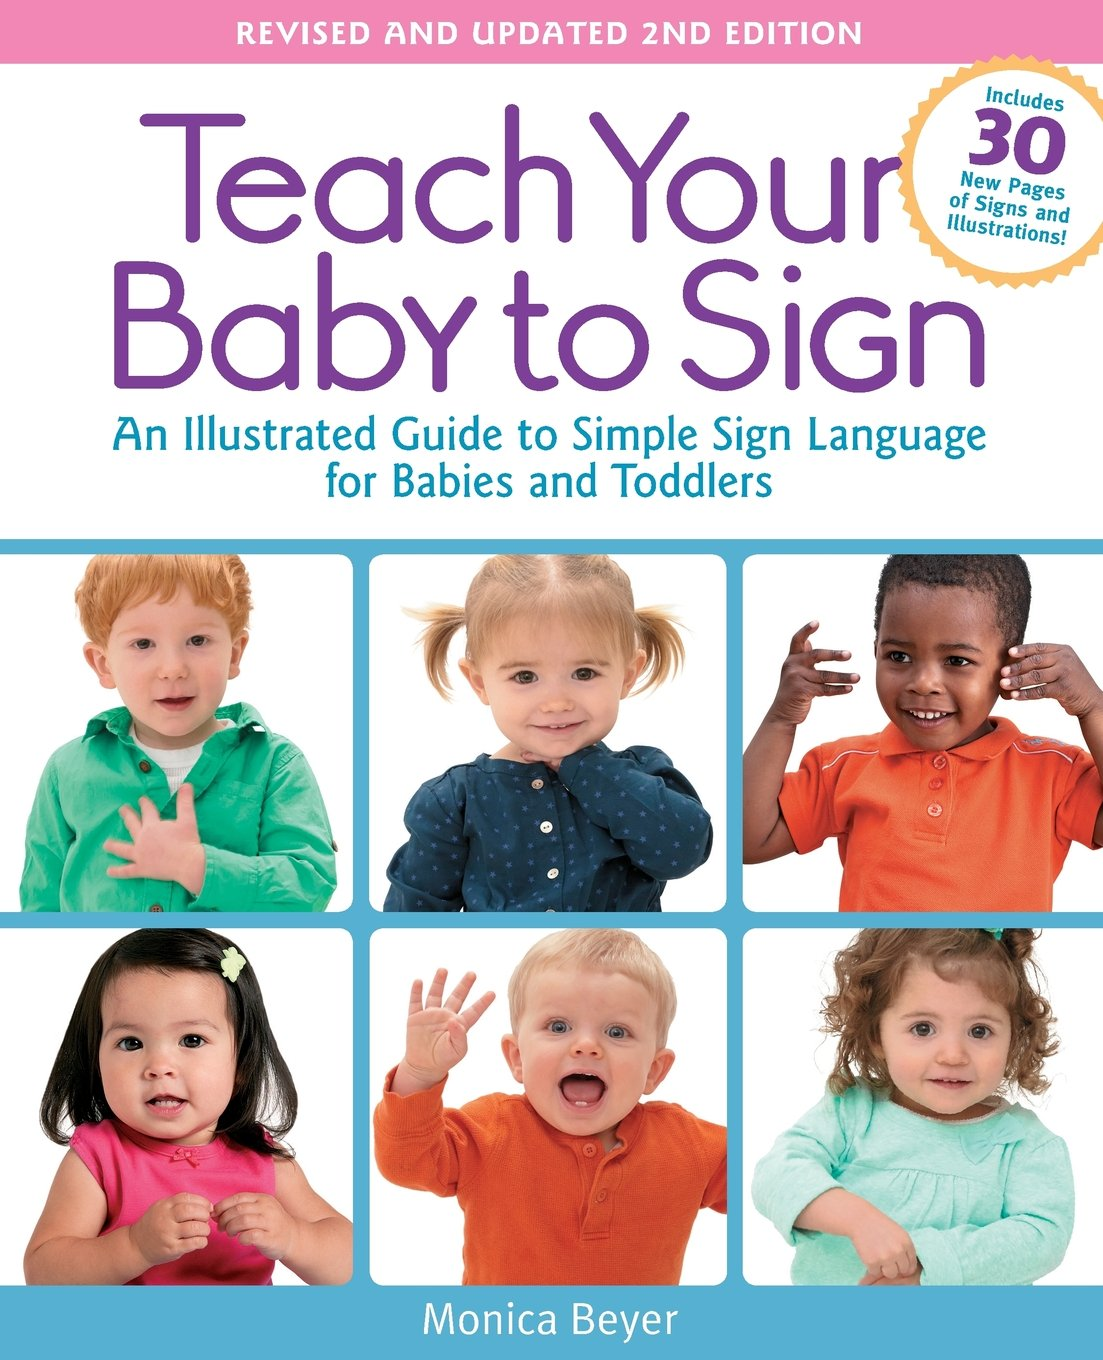 Read Online Teach Your Baby to Sign, Revised and Updated 2nd Edition: An Illustrated Guide to Simple Sign Language for Babies and Toddlers - Includes 30 New Pages of Signs and Illustrations! pdf epub